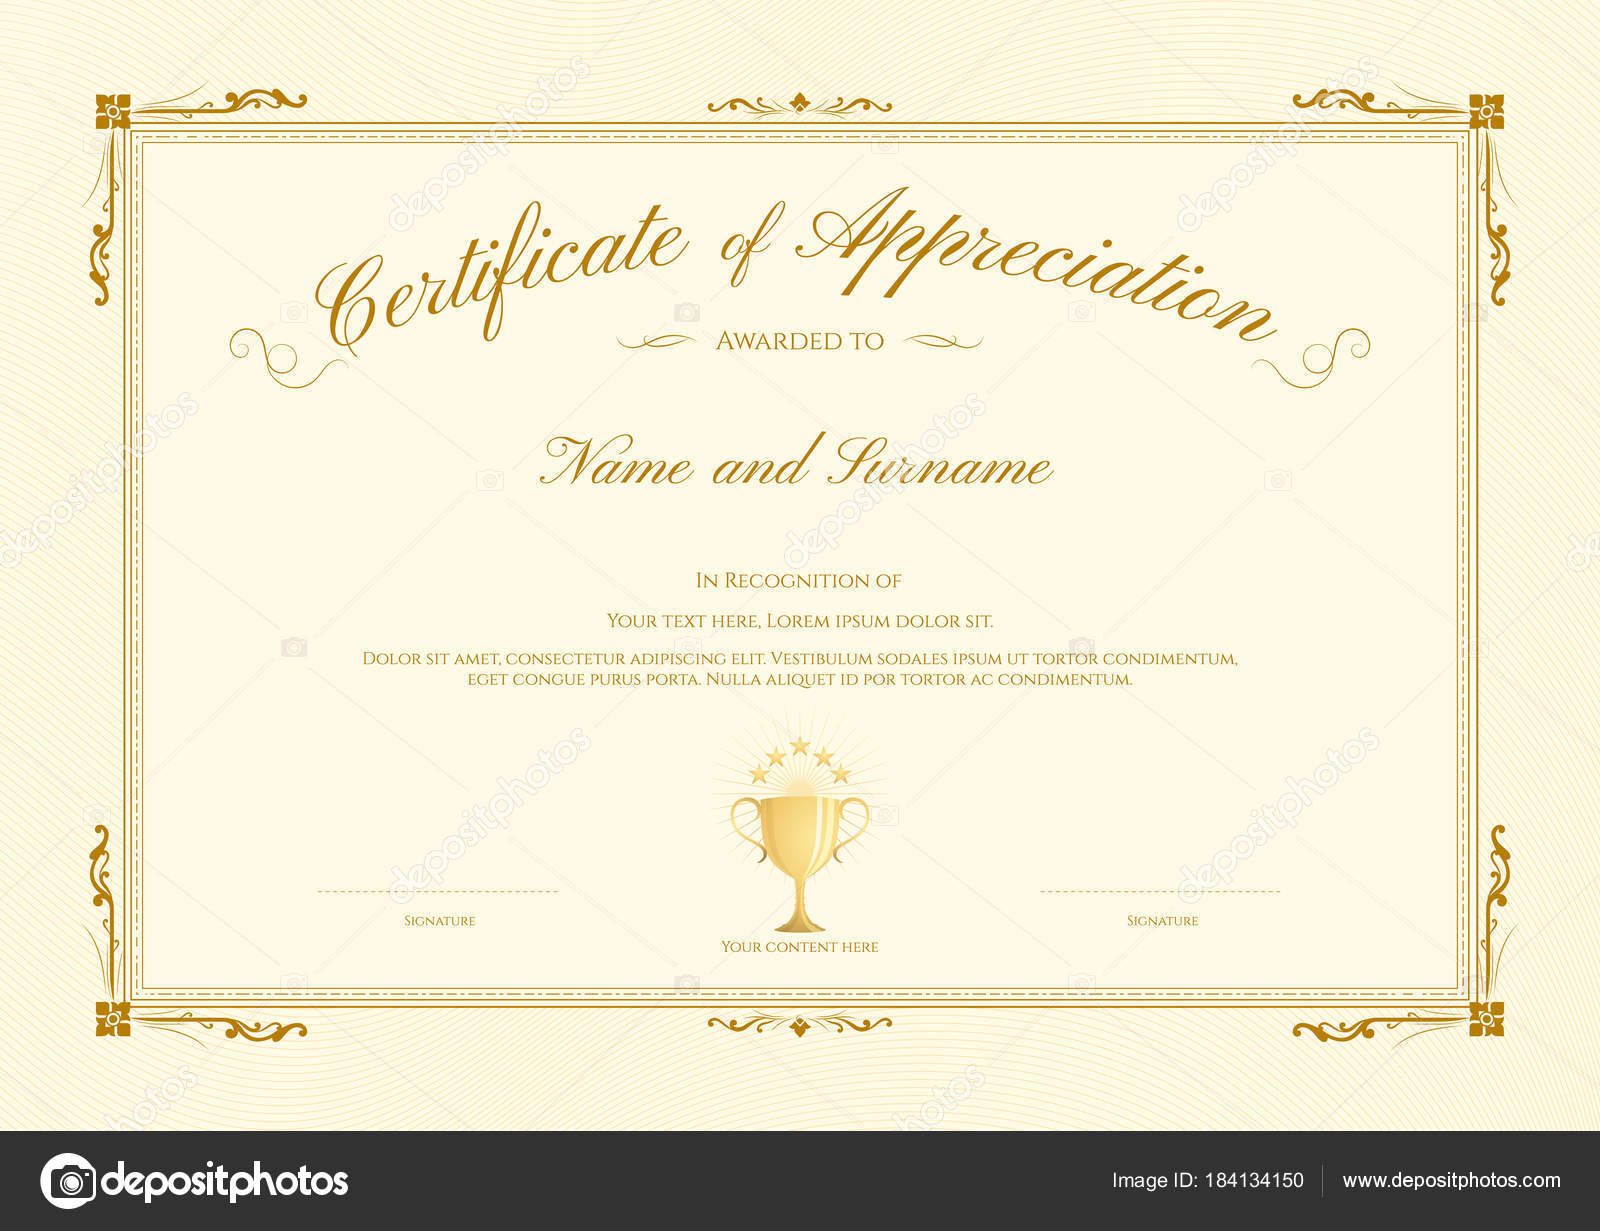 Luxury certificate template elegant border frame diploma design luxury certificate template elegant border frame diploma design graduation completion stock vector yadclub Images